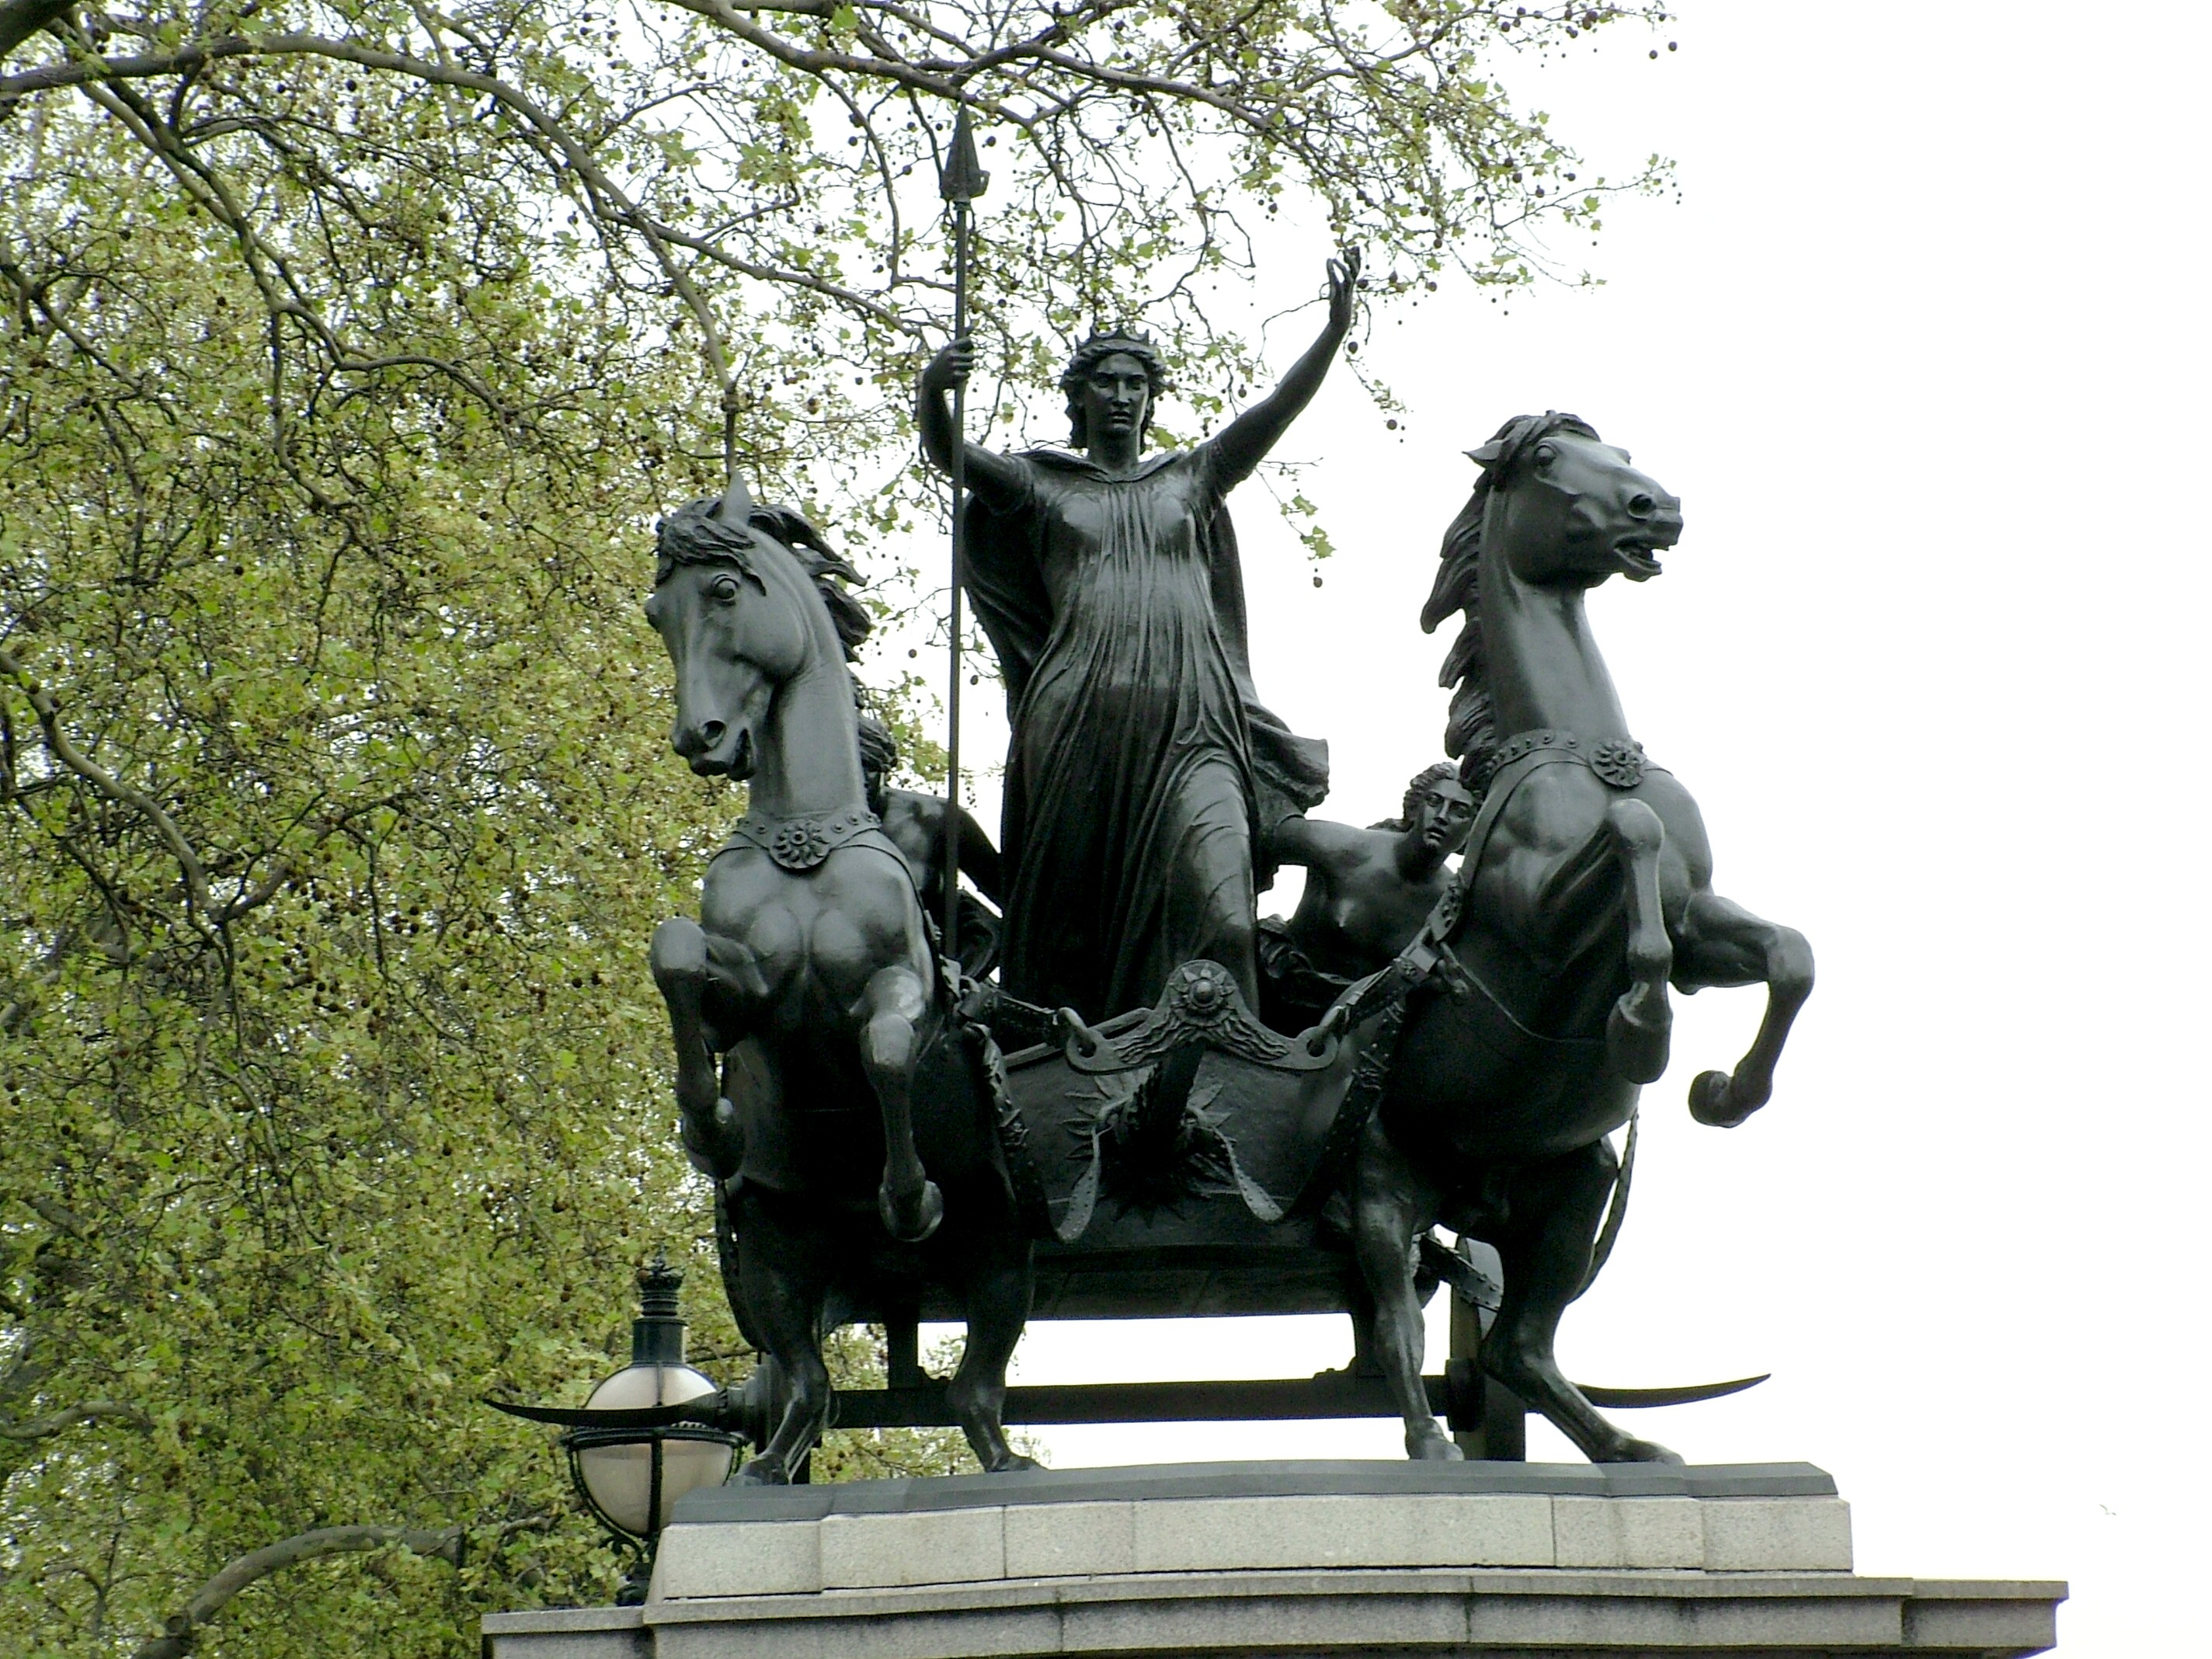 boudicca essay Conclusion meanwhile, boudicca and her warriors, certain they would once again prevail over such a small roman force not only quickly but completely, brought their.